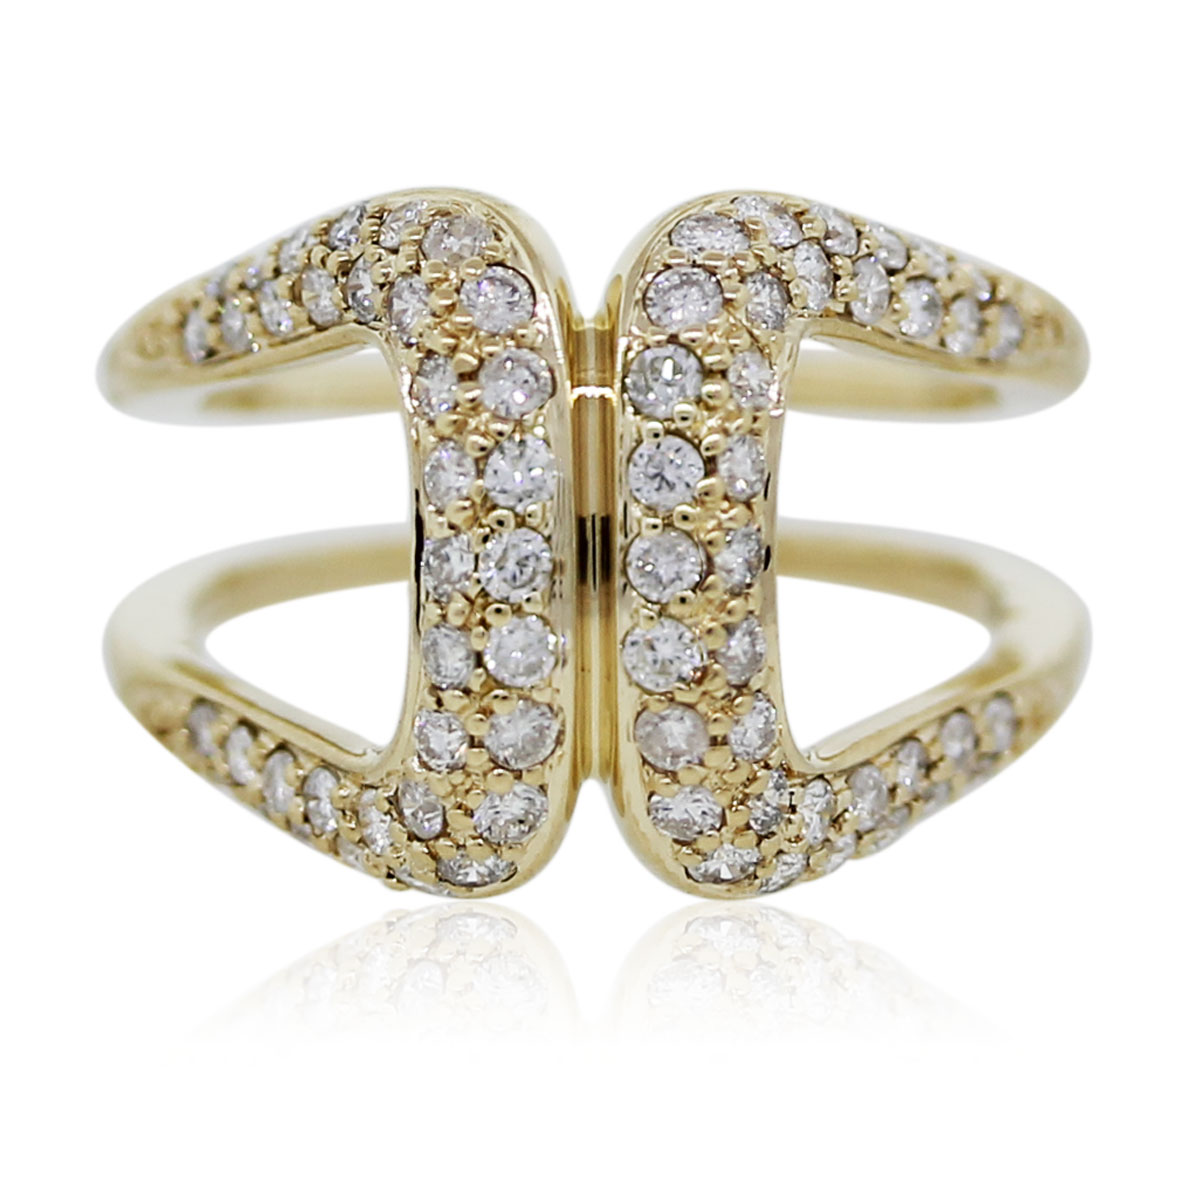 You are Viewing this Gold and Diamond Horseshoe Ring